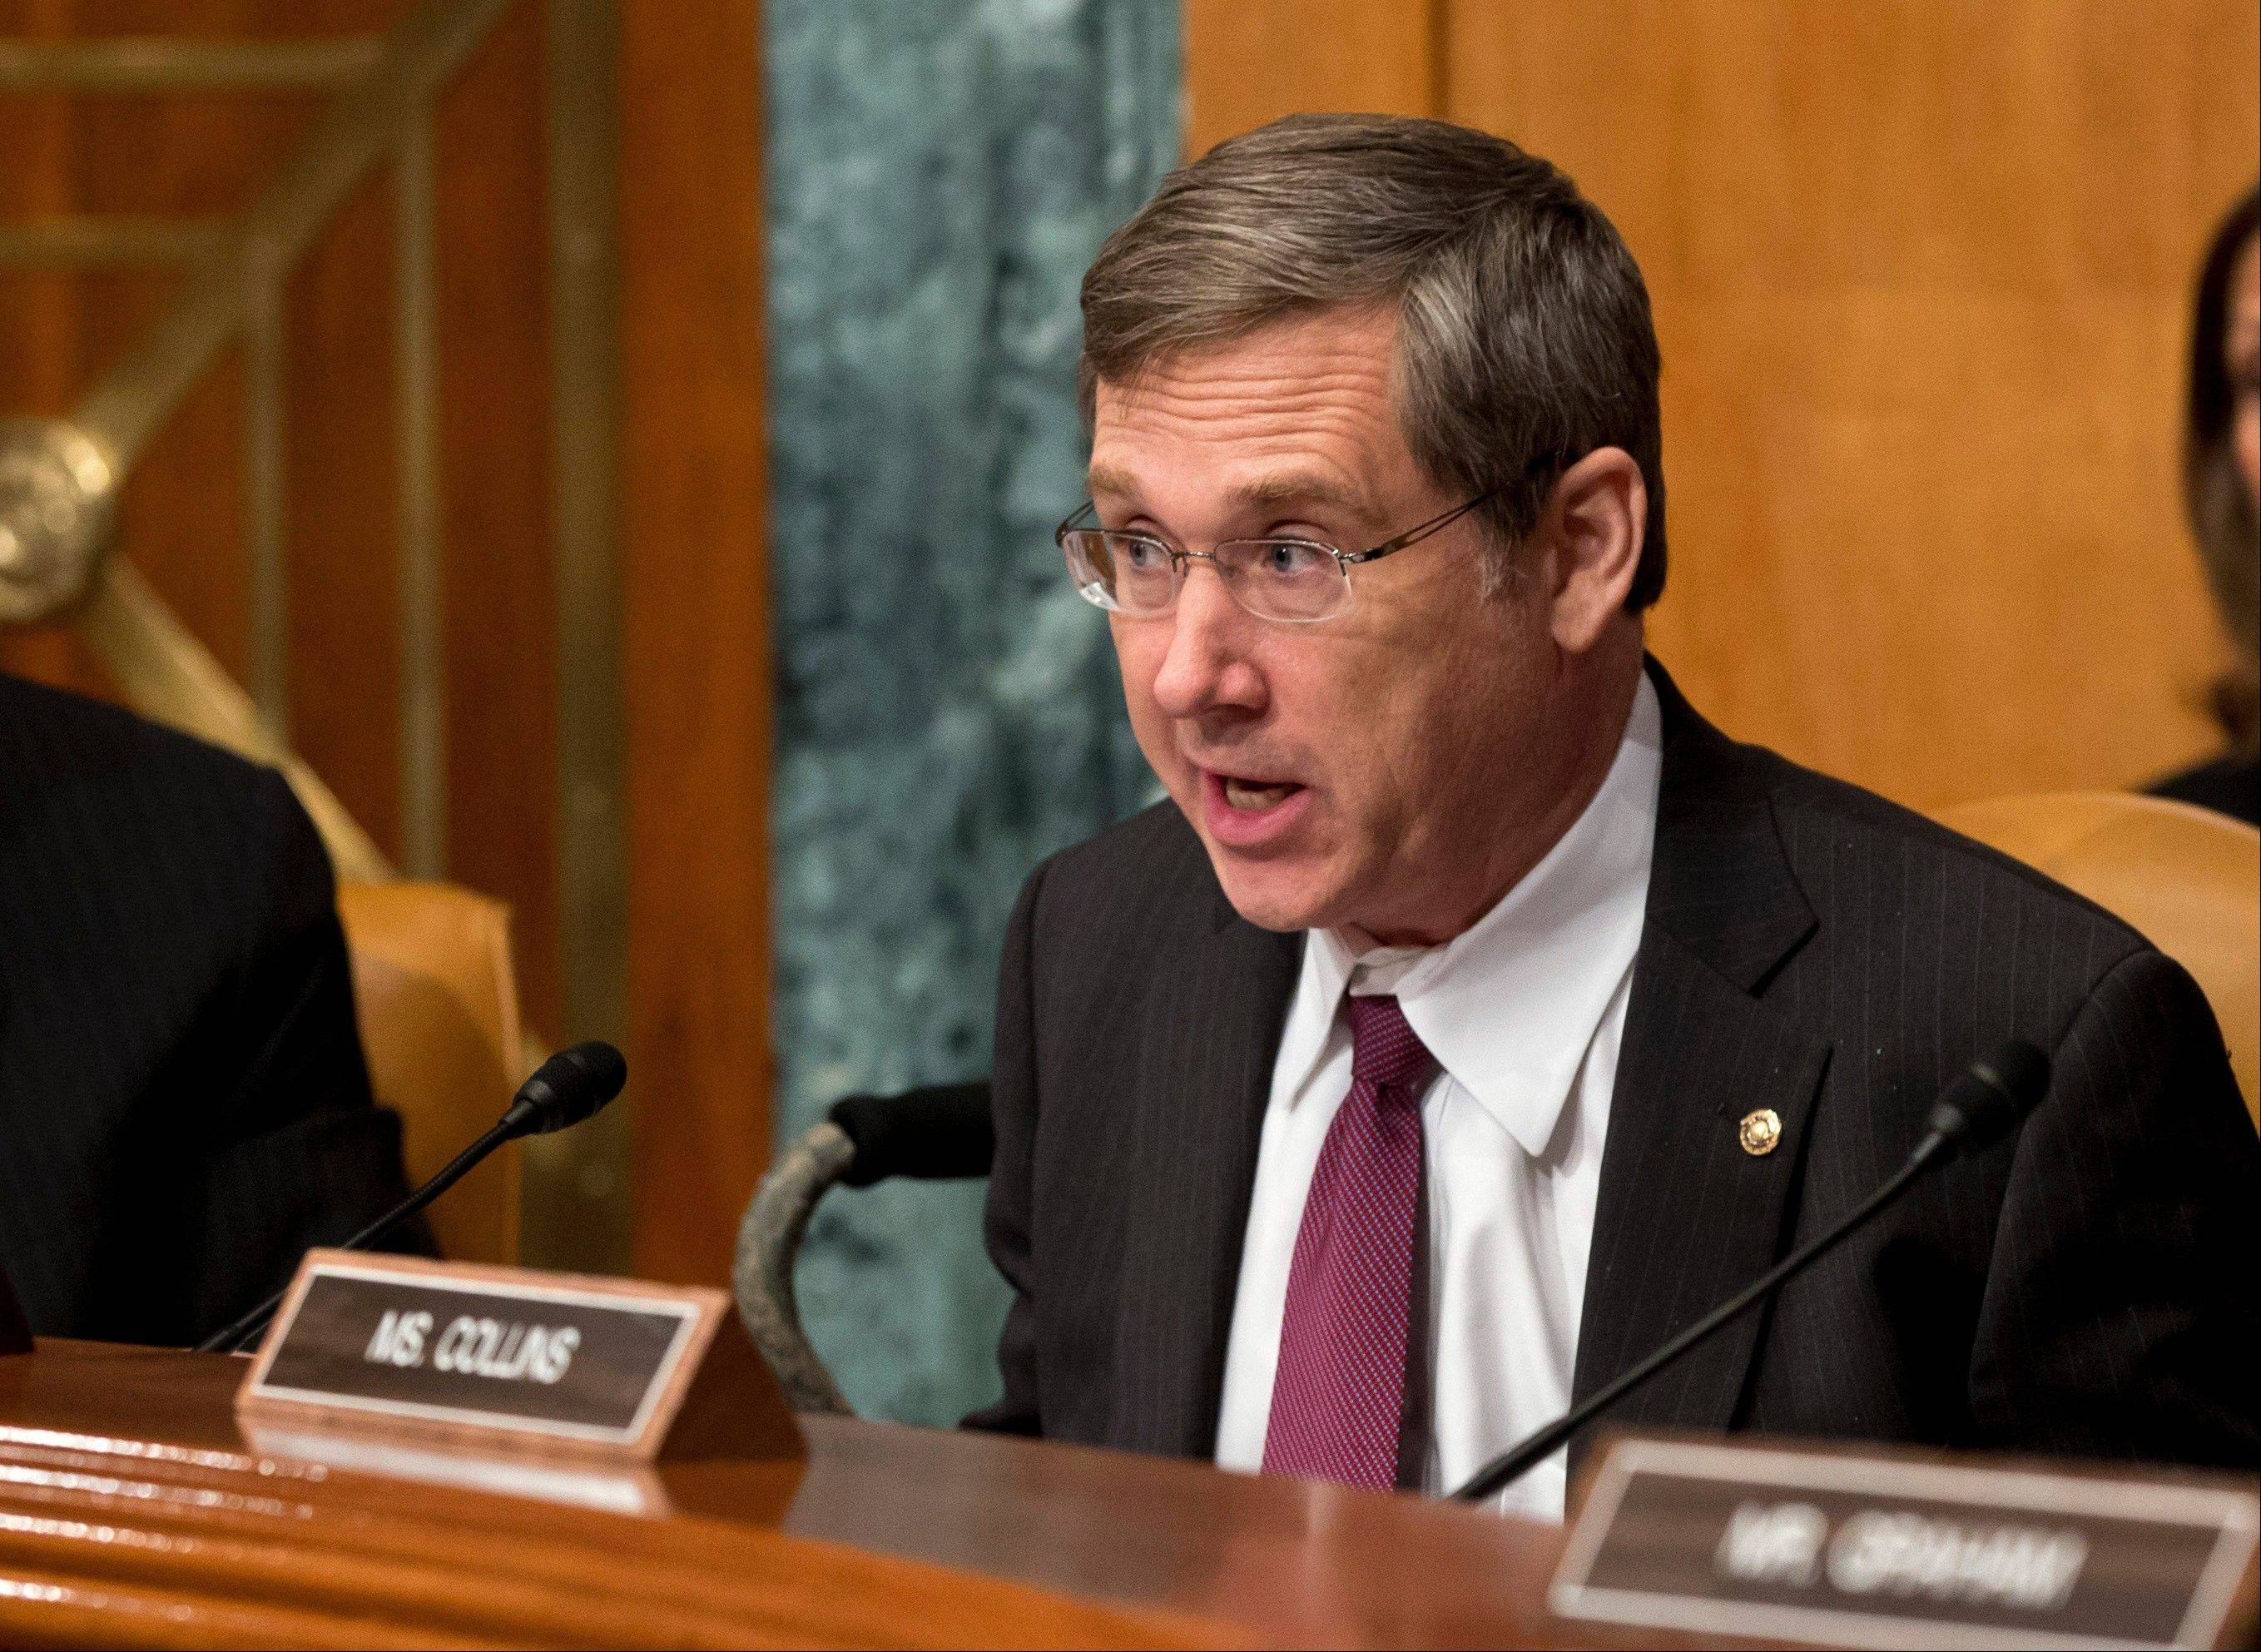 Kirk calls for new sanctions in case Iran cheats